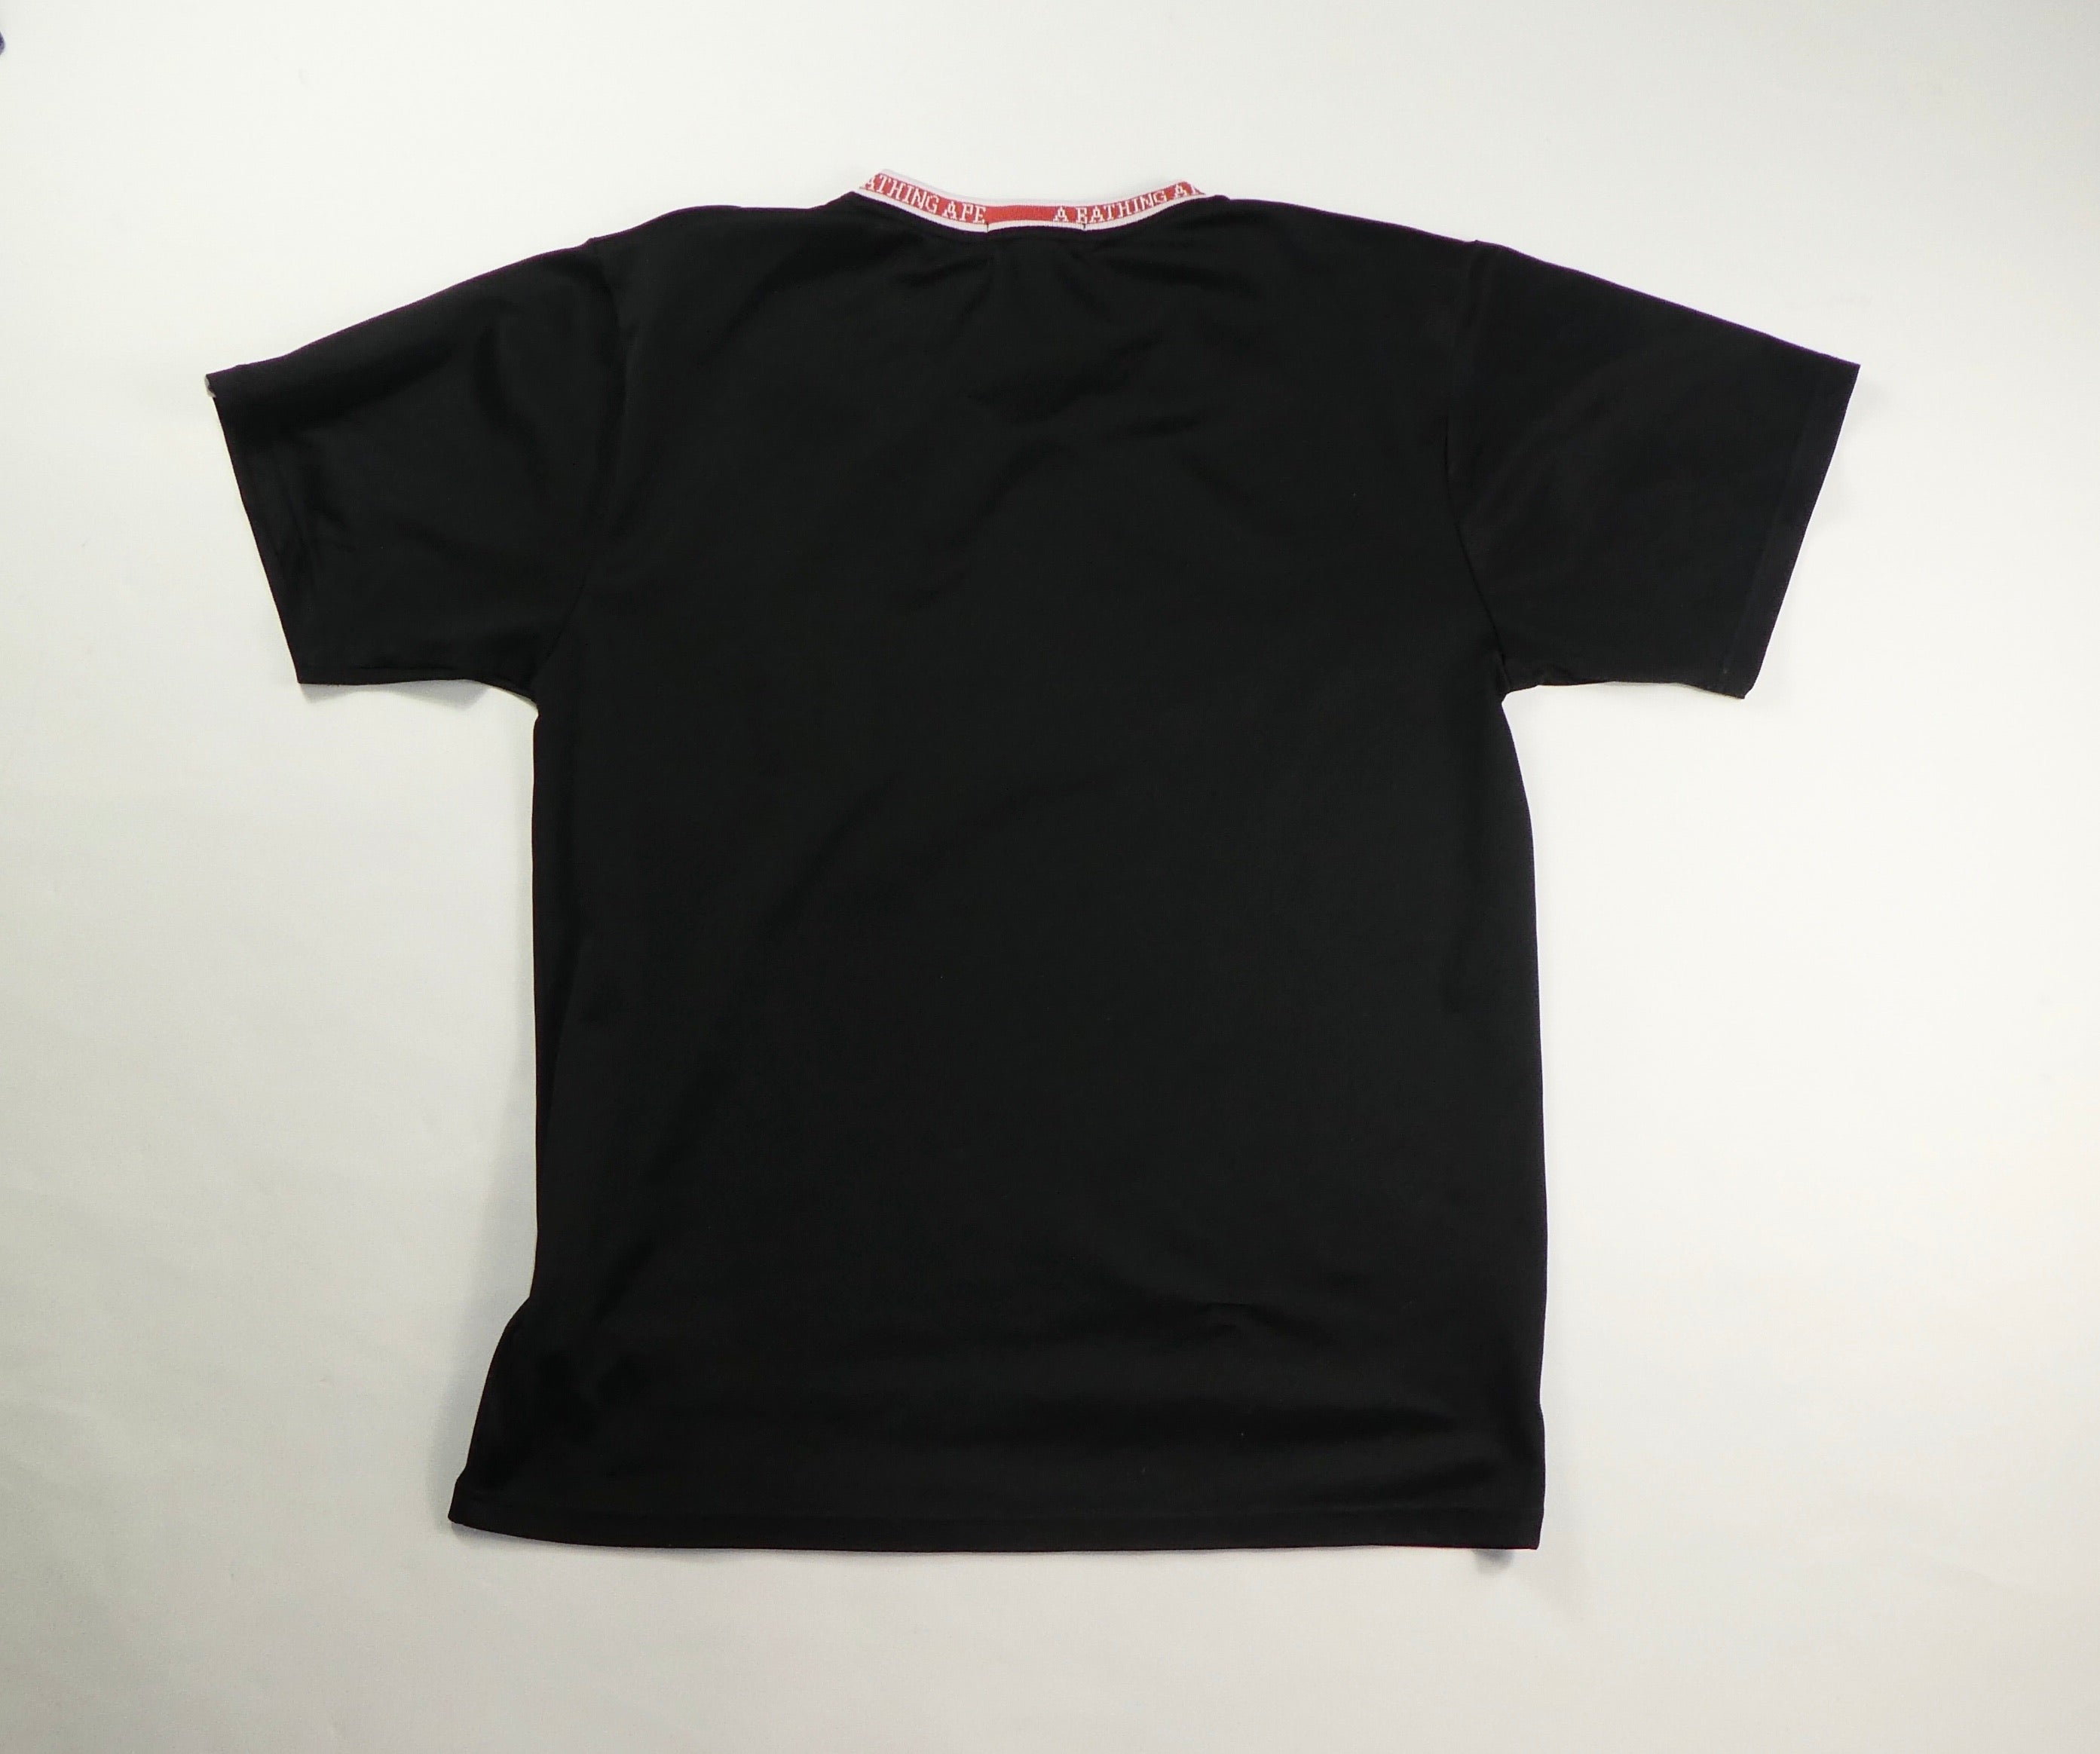 Bape V Neck Jersey T Shirt - XL